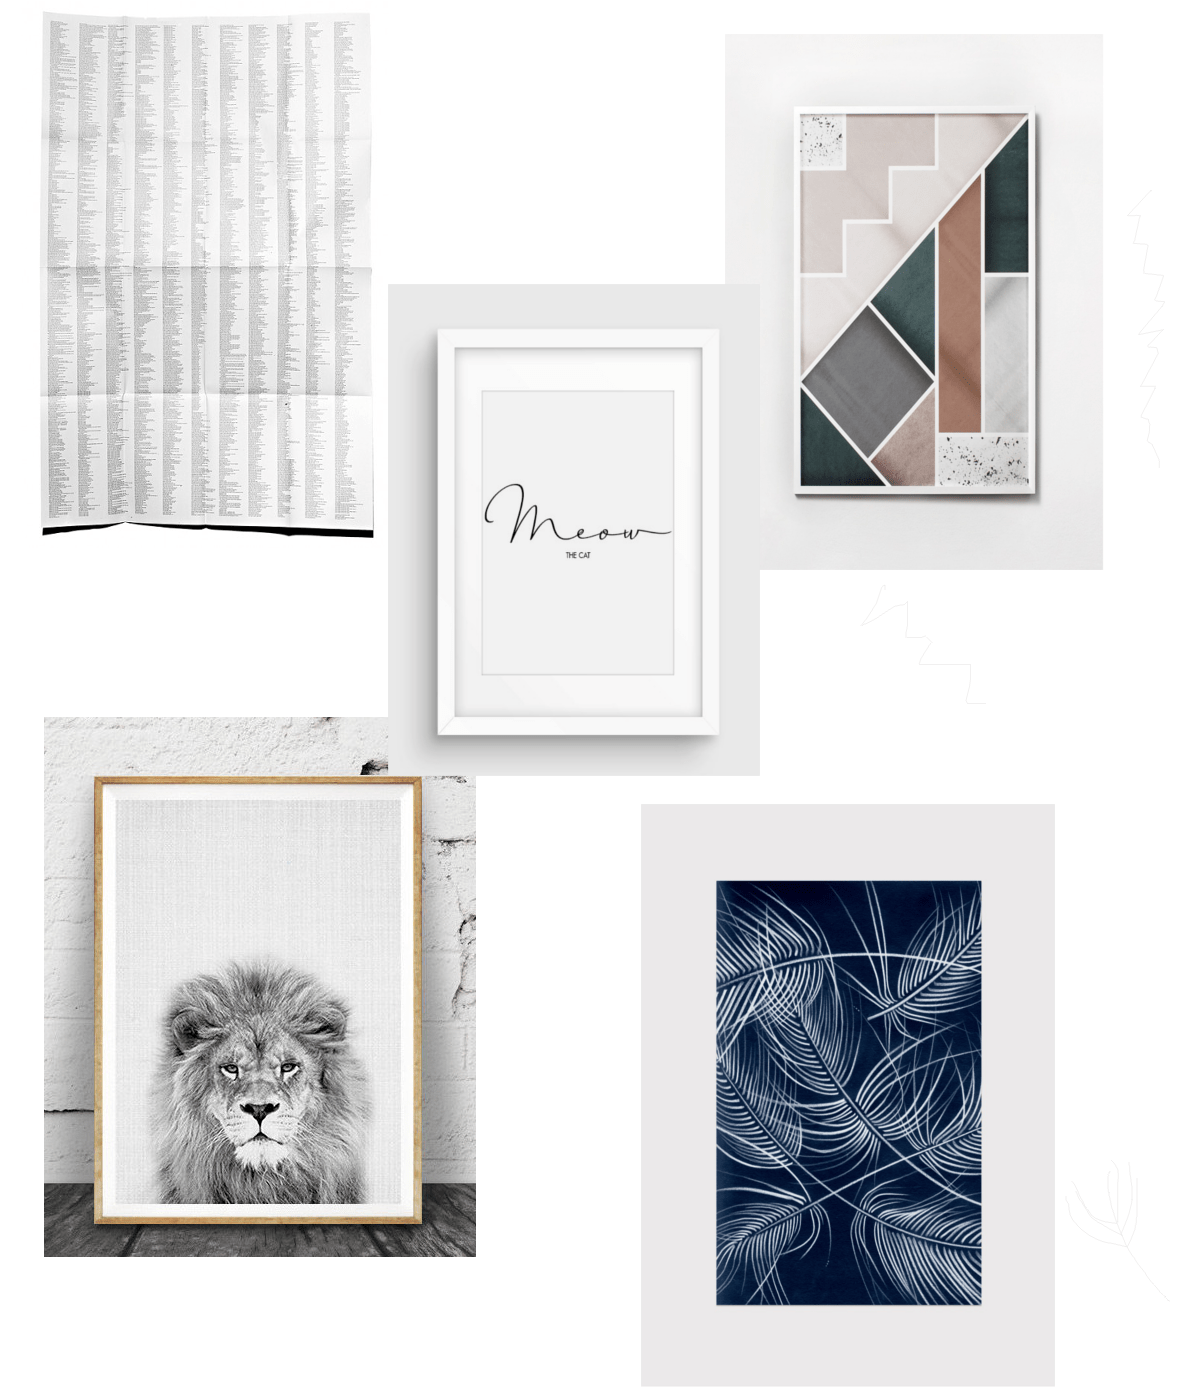 Poster and Print Gift Guide via Design Studio 210